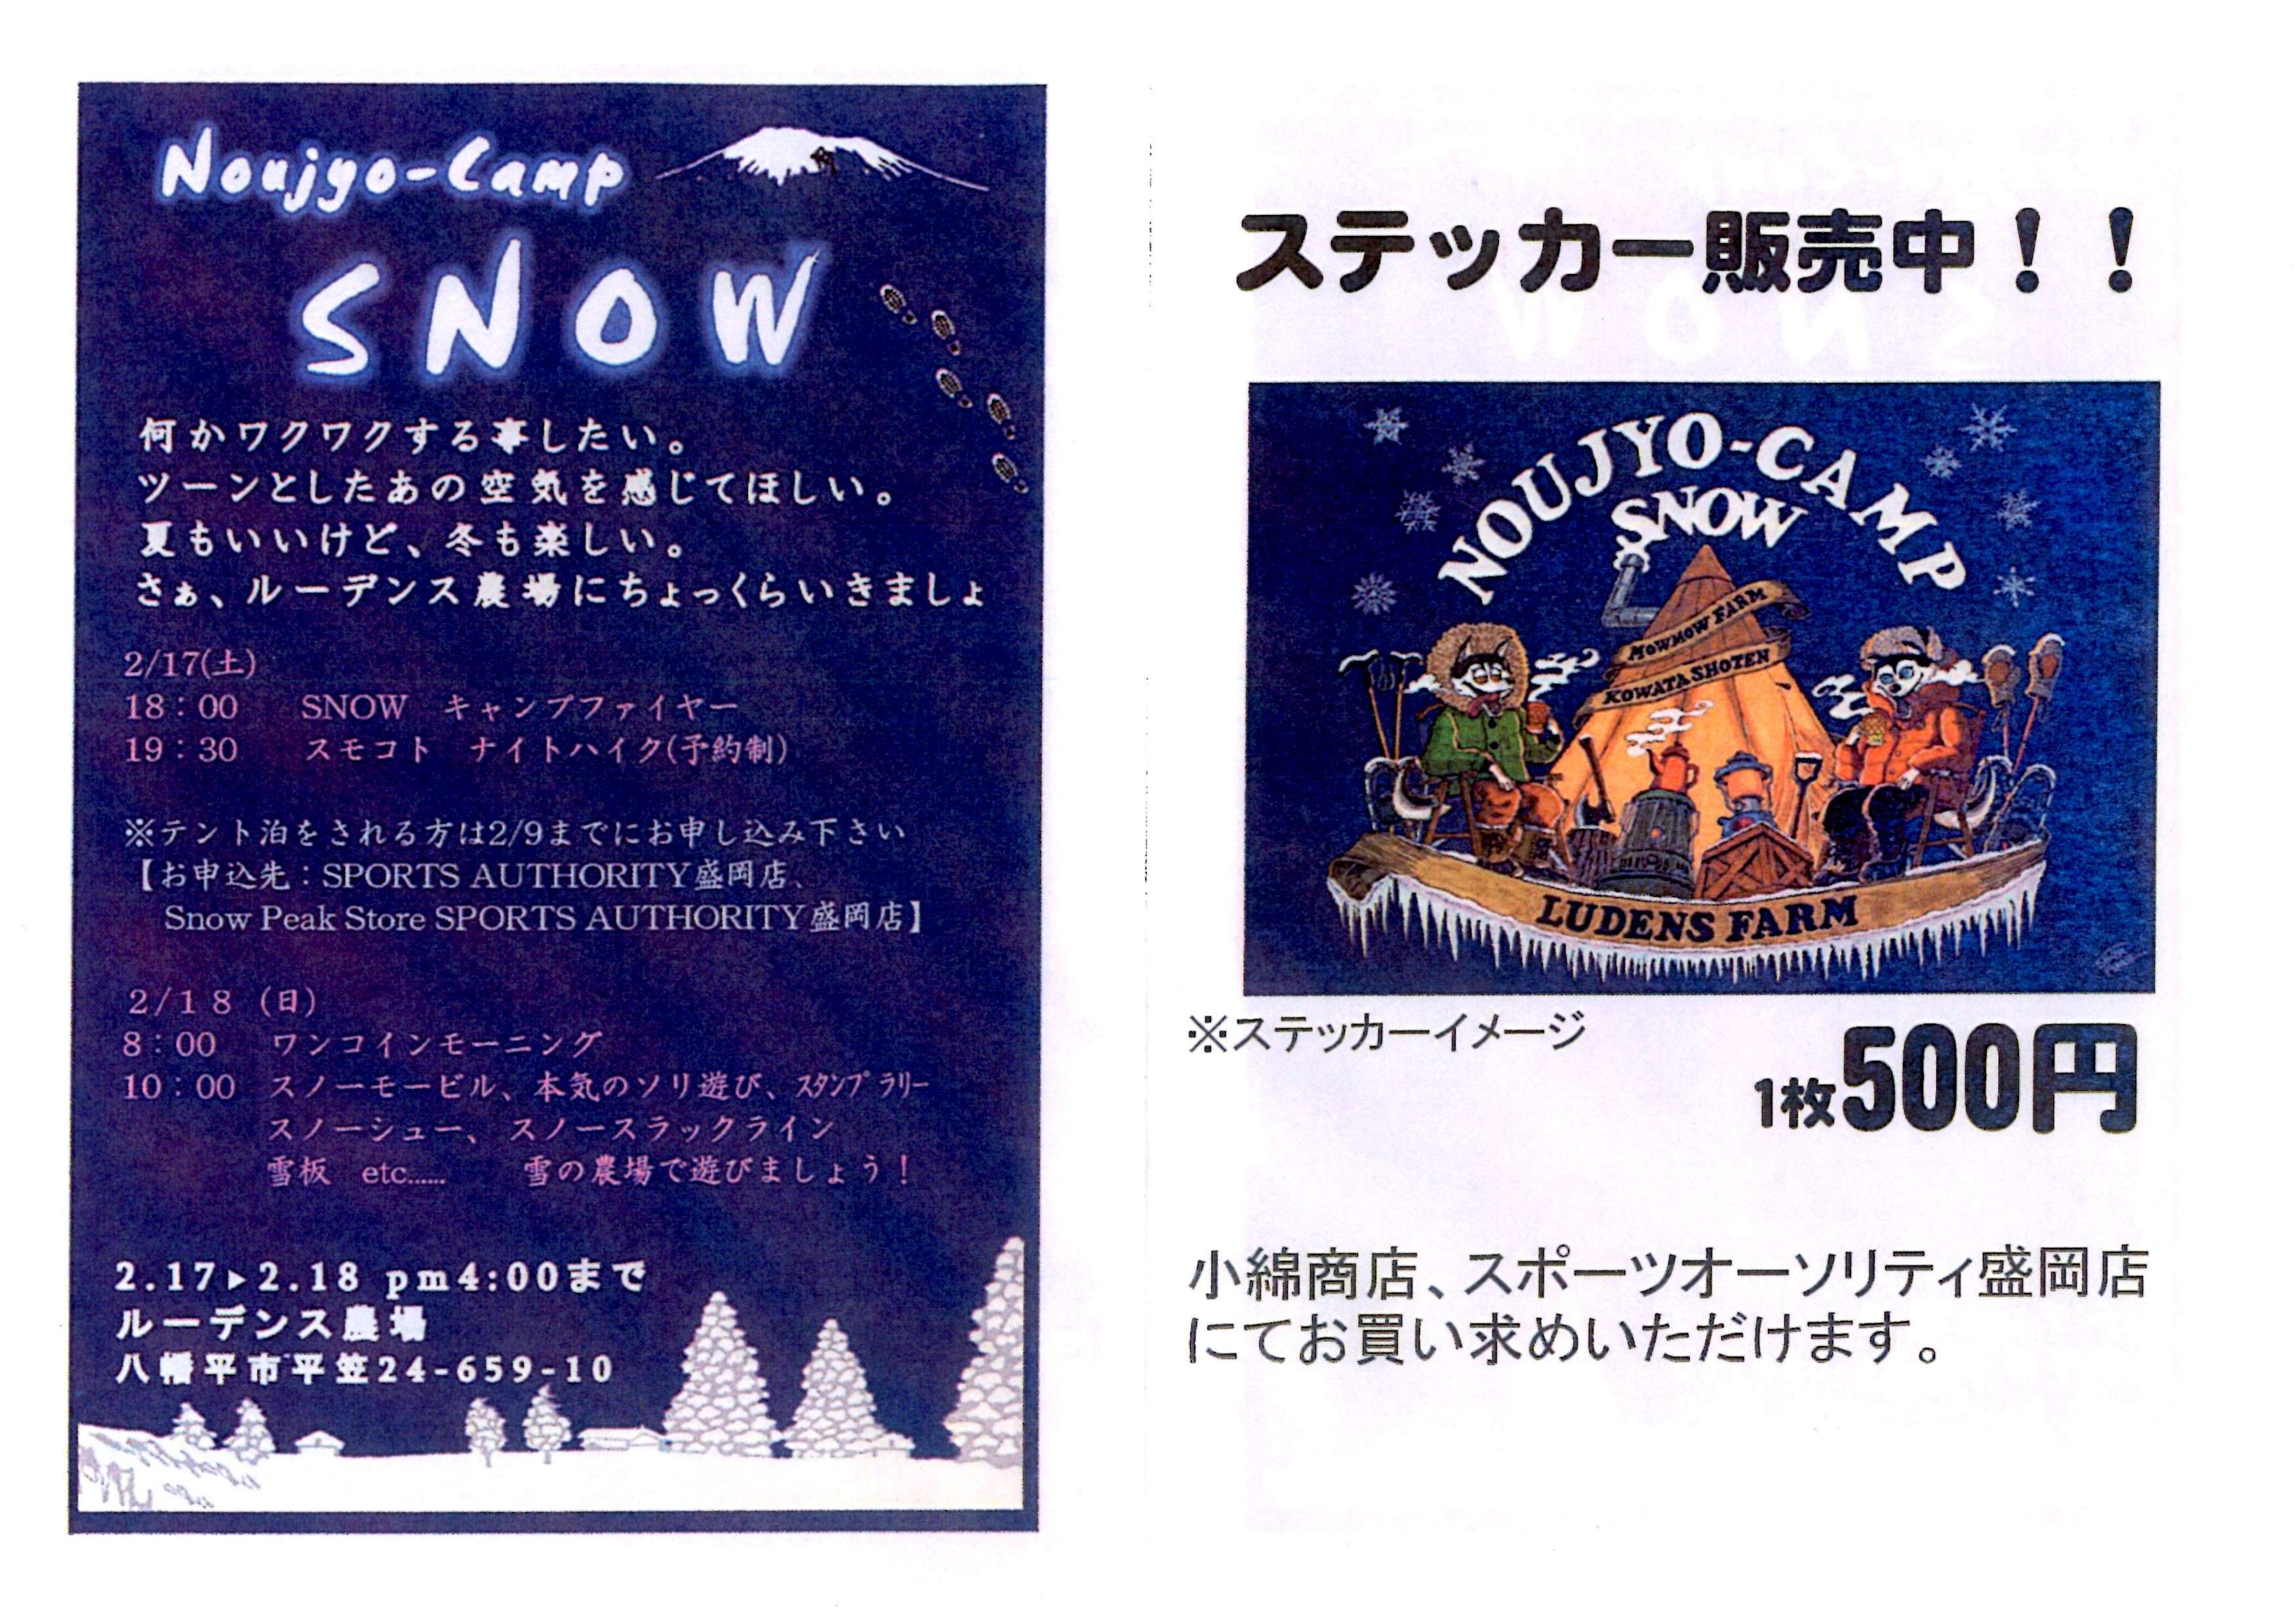 ❄Noujyo-Camp SNOW❄2018.2.17▶2.18